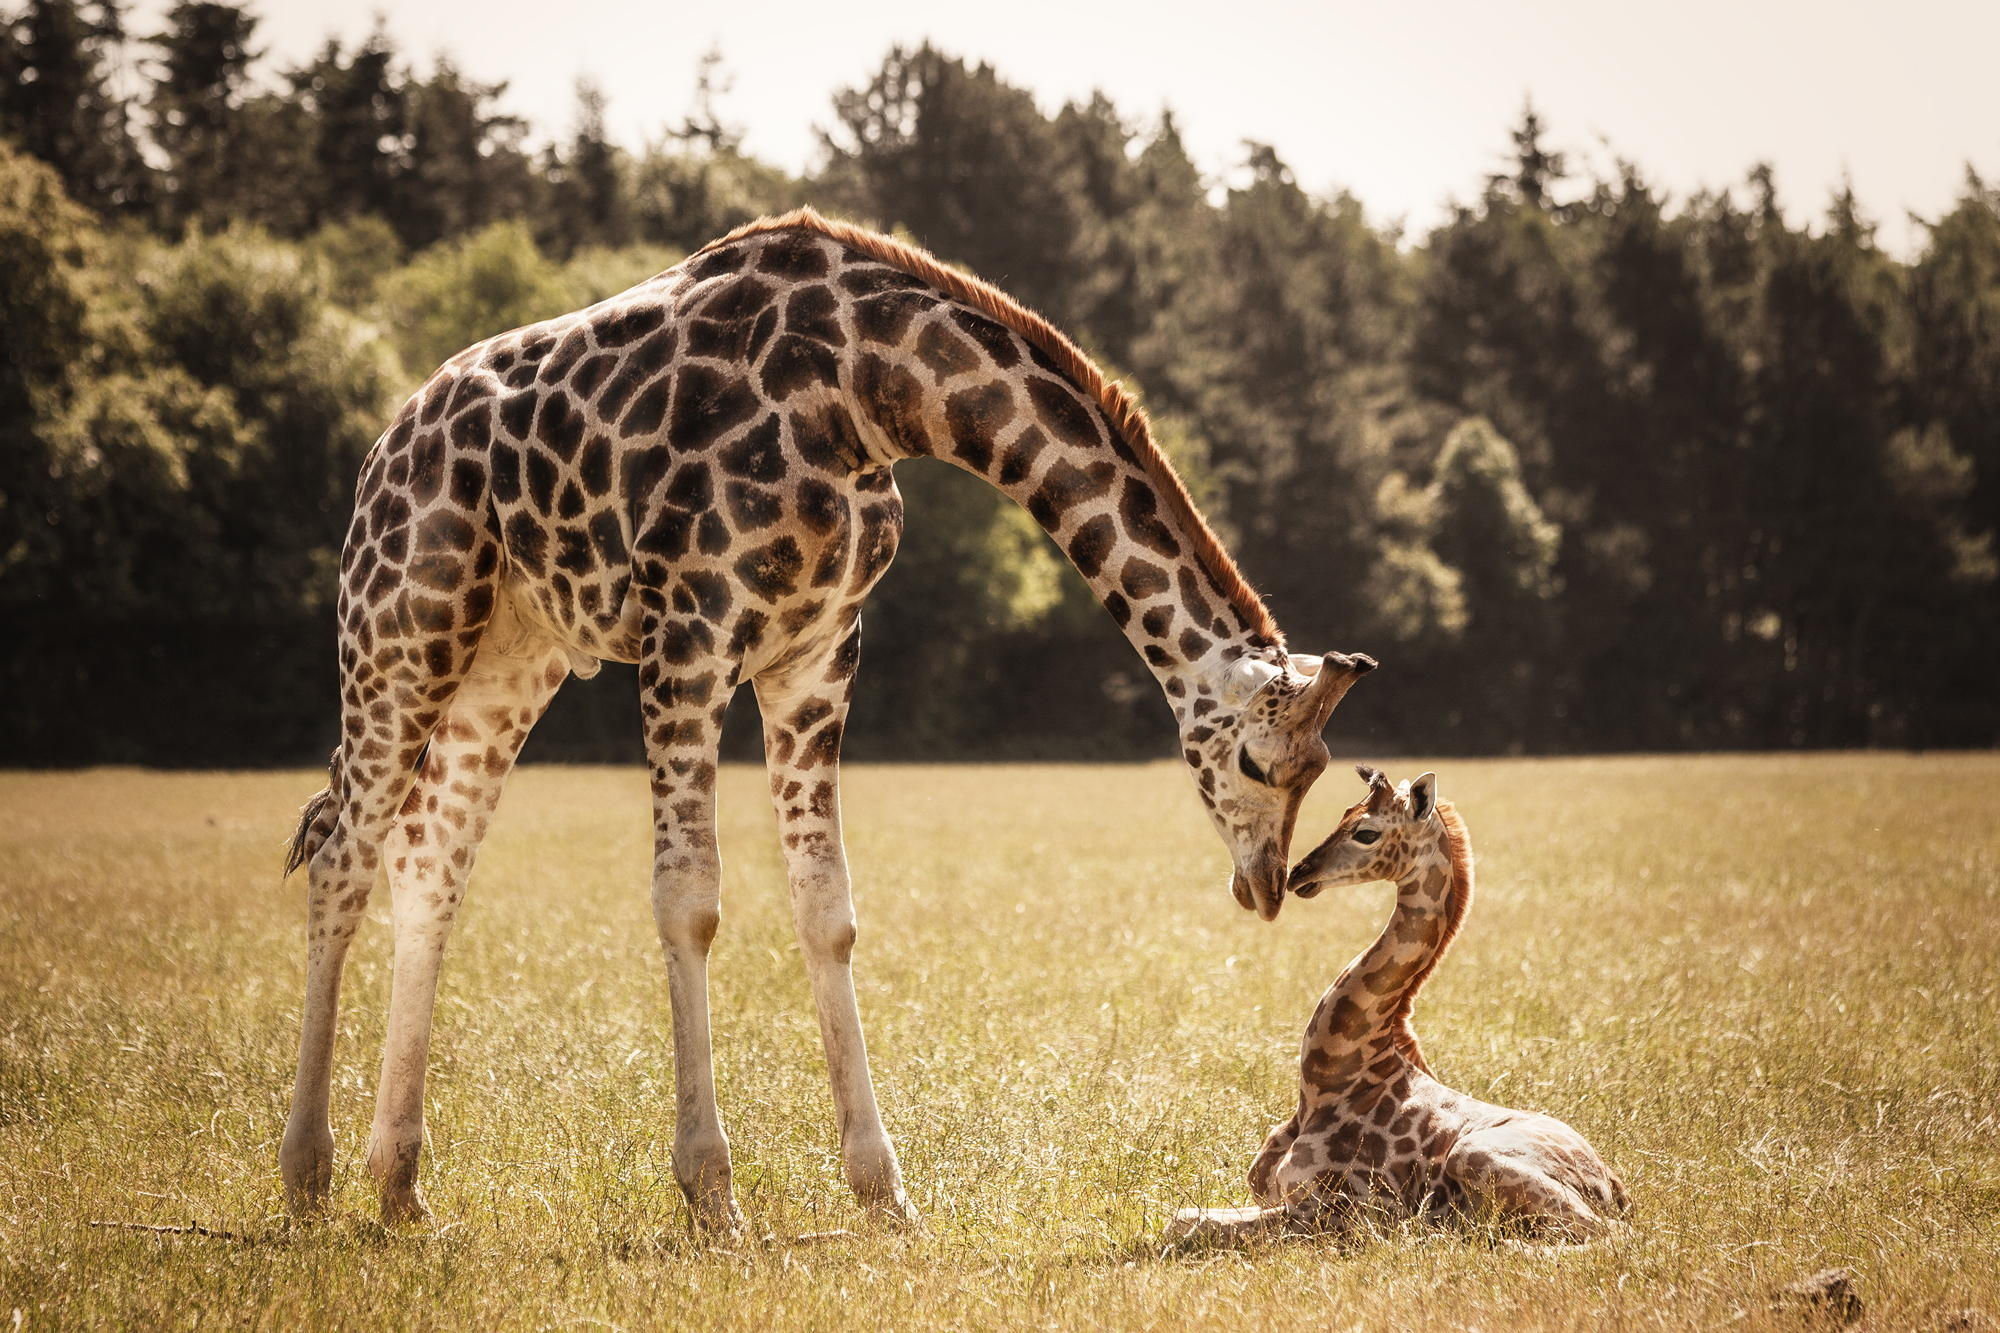 A Giraffe And Her Baby Full HD Wallpaper Background Image